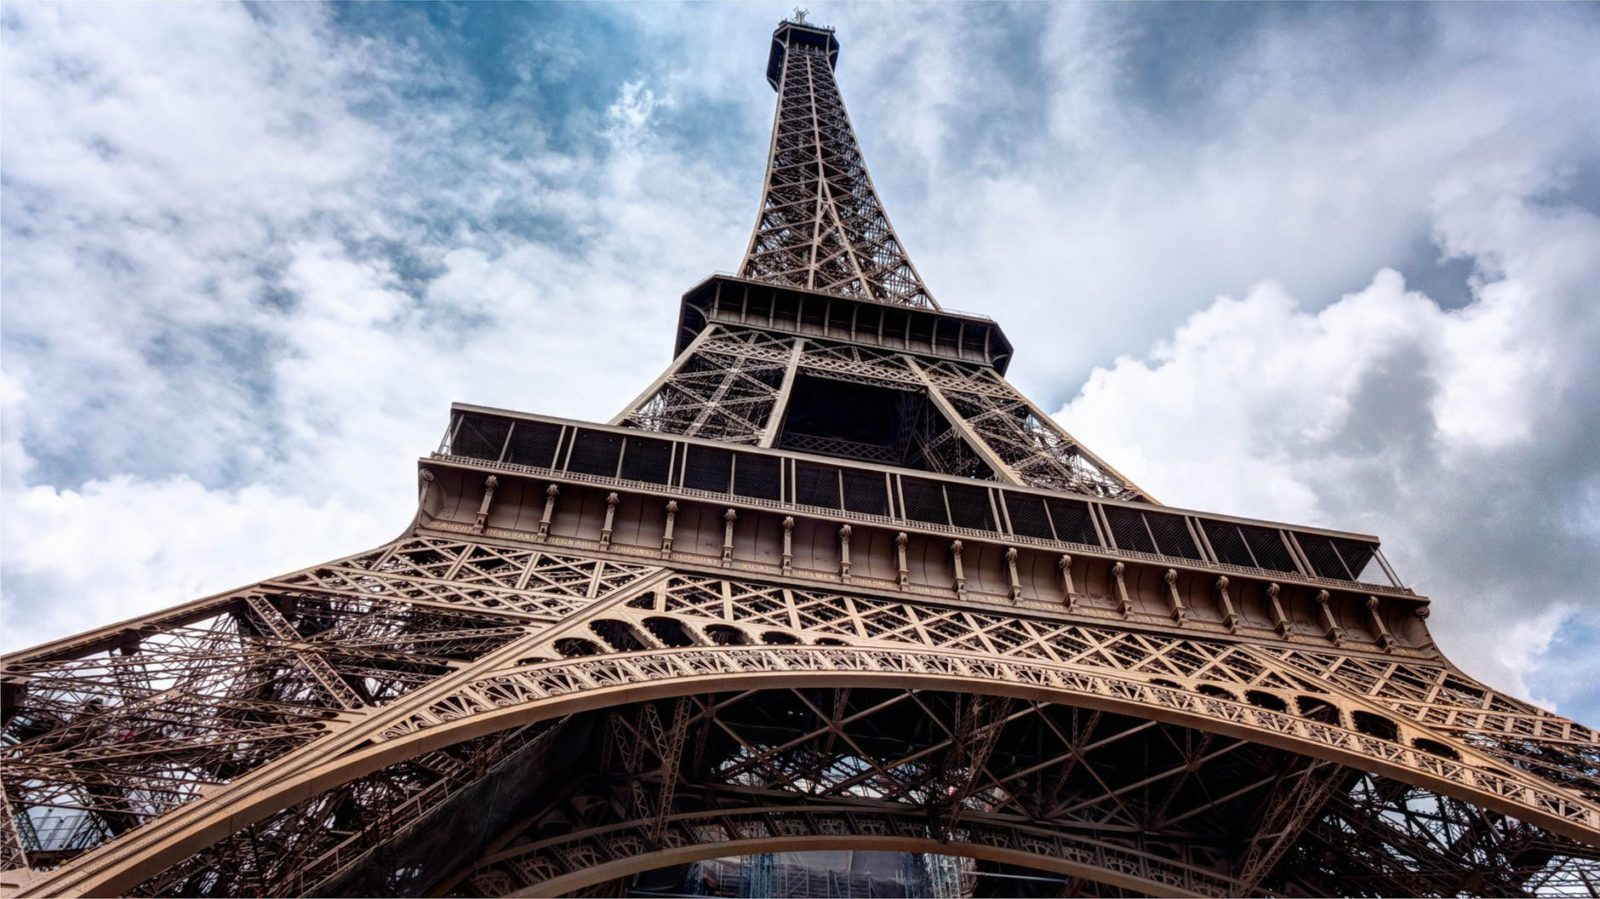 Flight Deal Round Trip From Chicago Area to Paris #chicago #paris